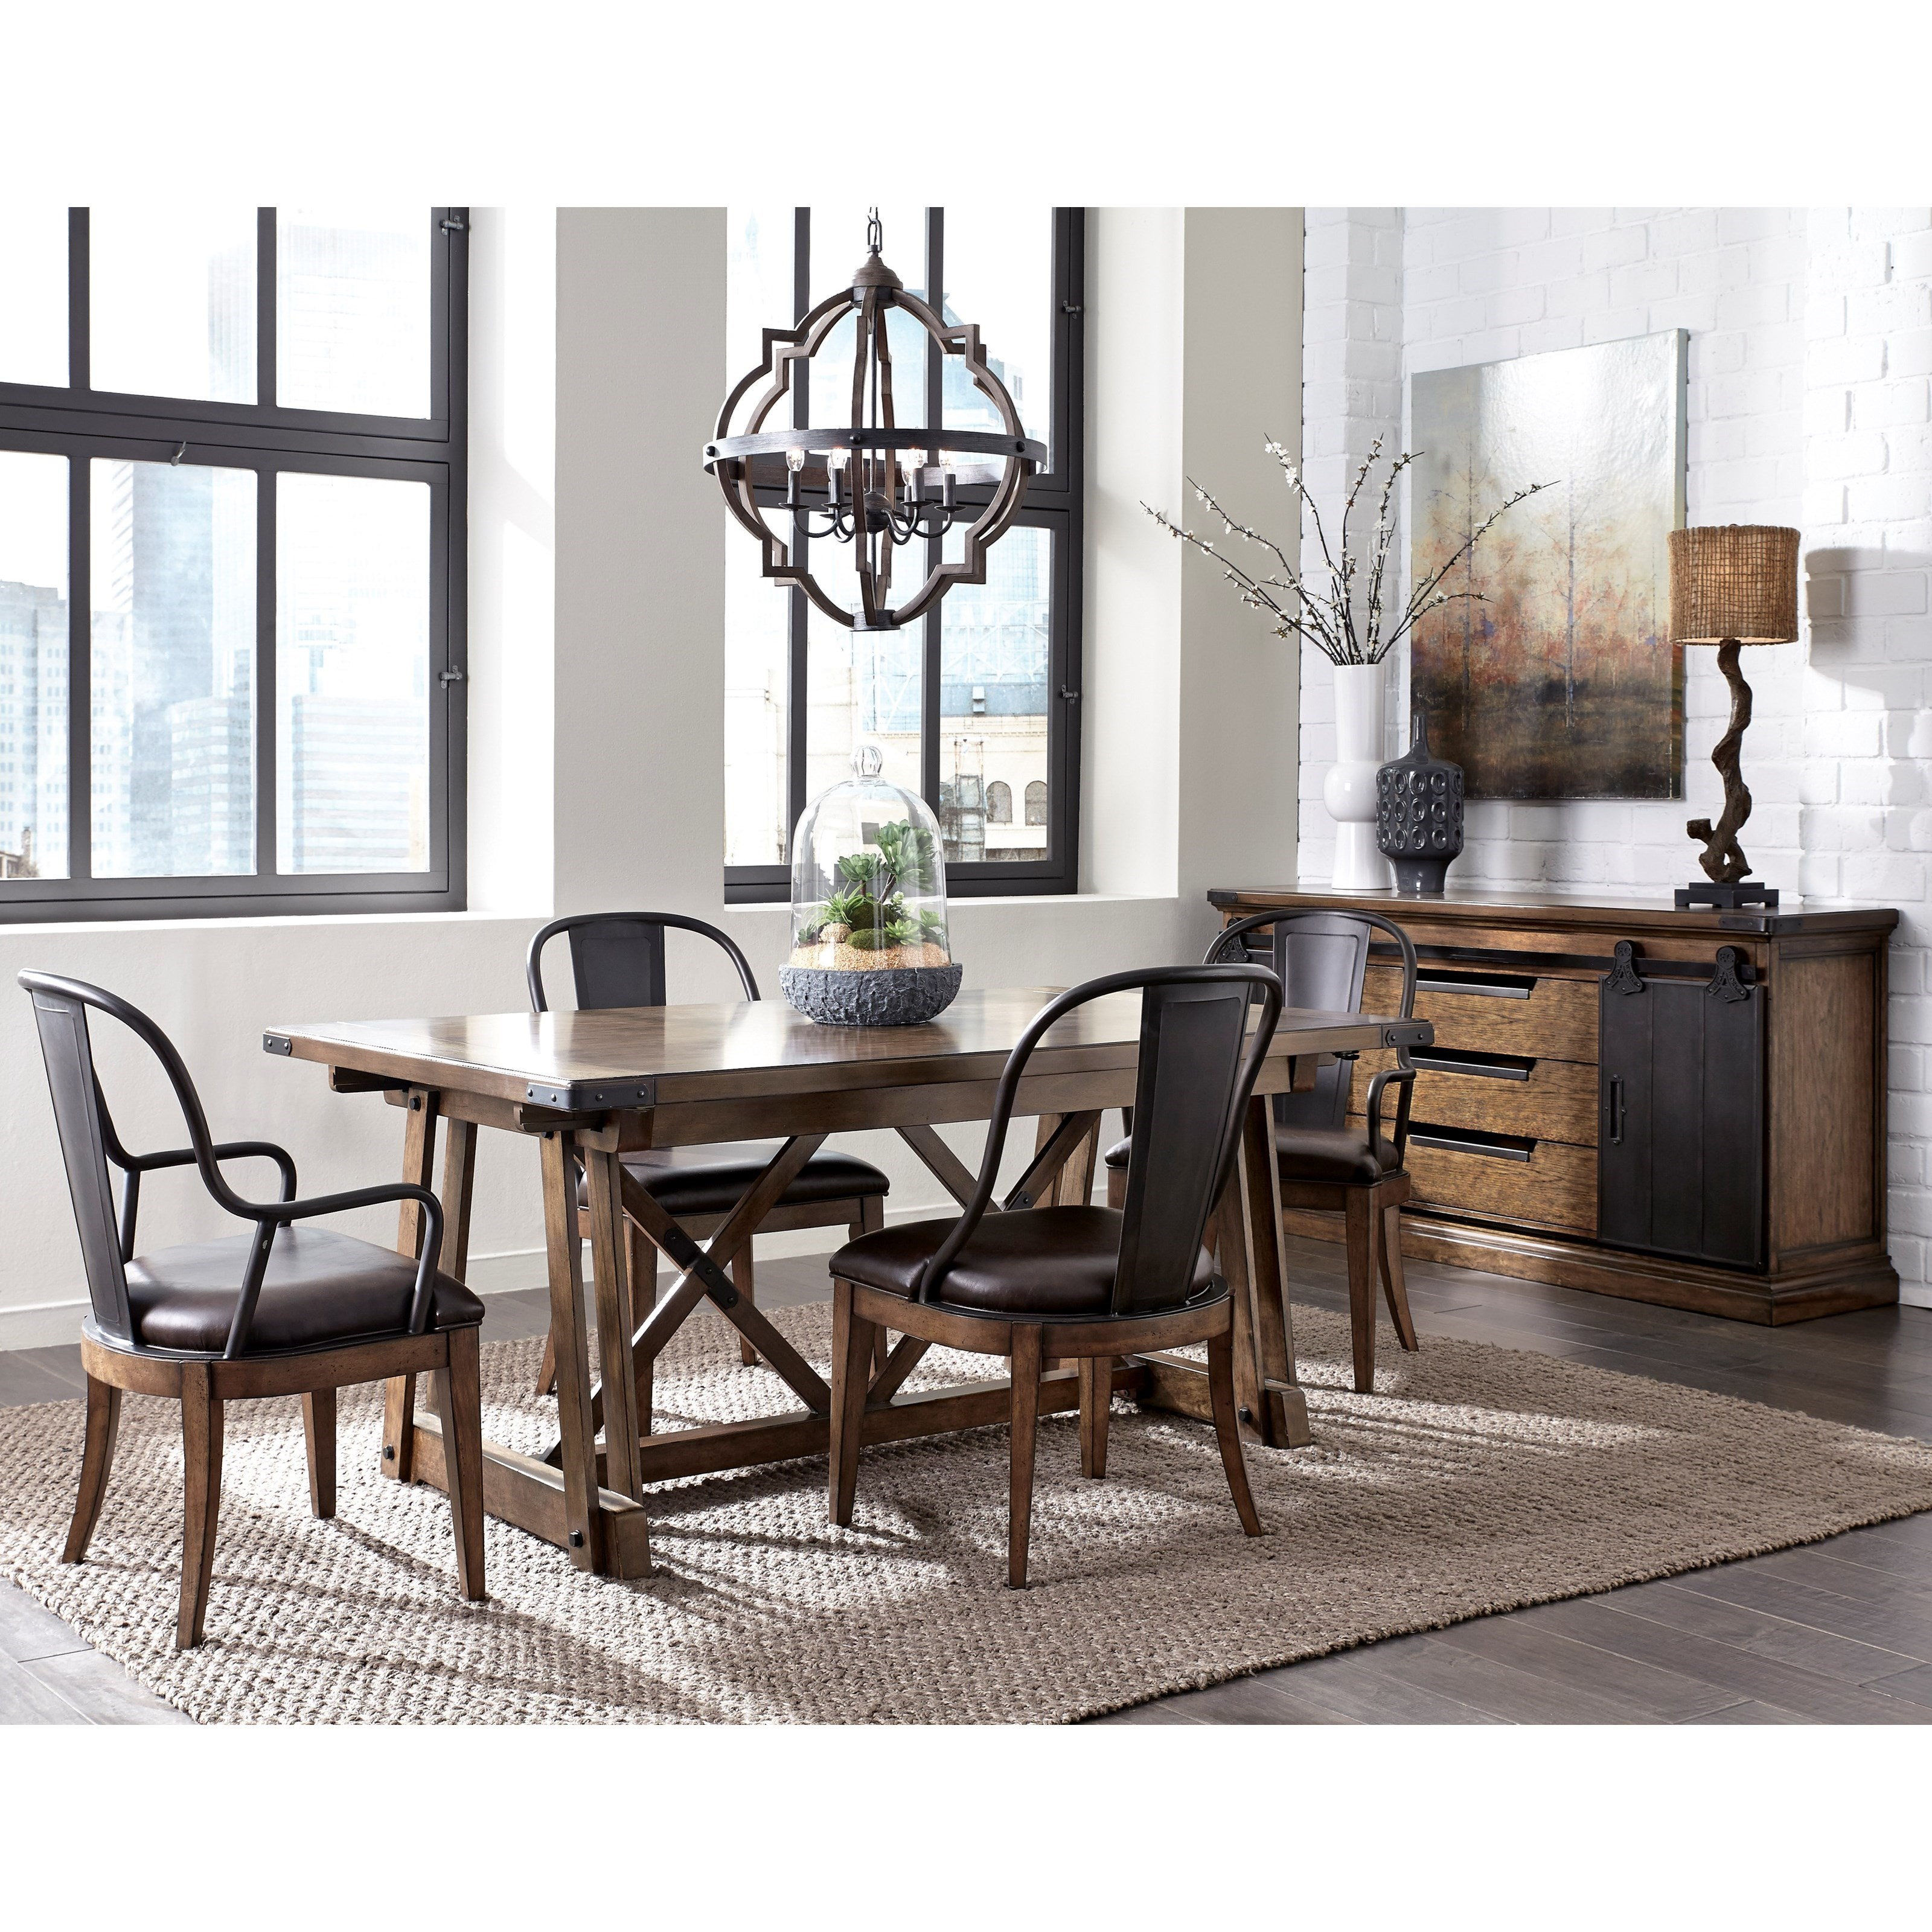 Pulaski furniture weston loft formal dining room group wayside furniture formal dining room - Pulaski dining room ...